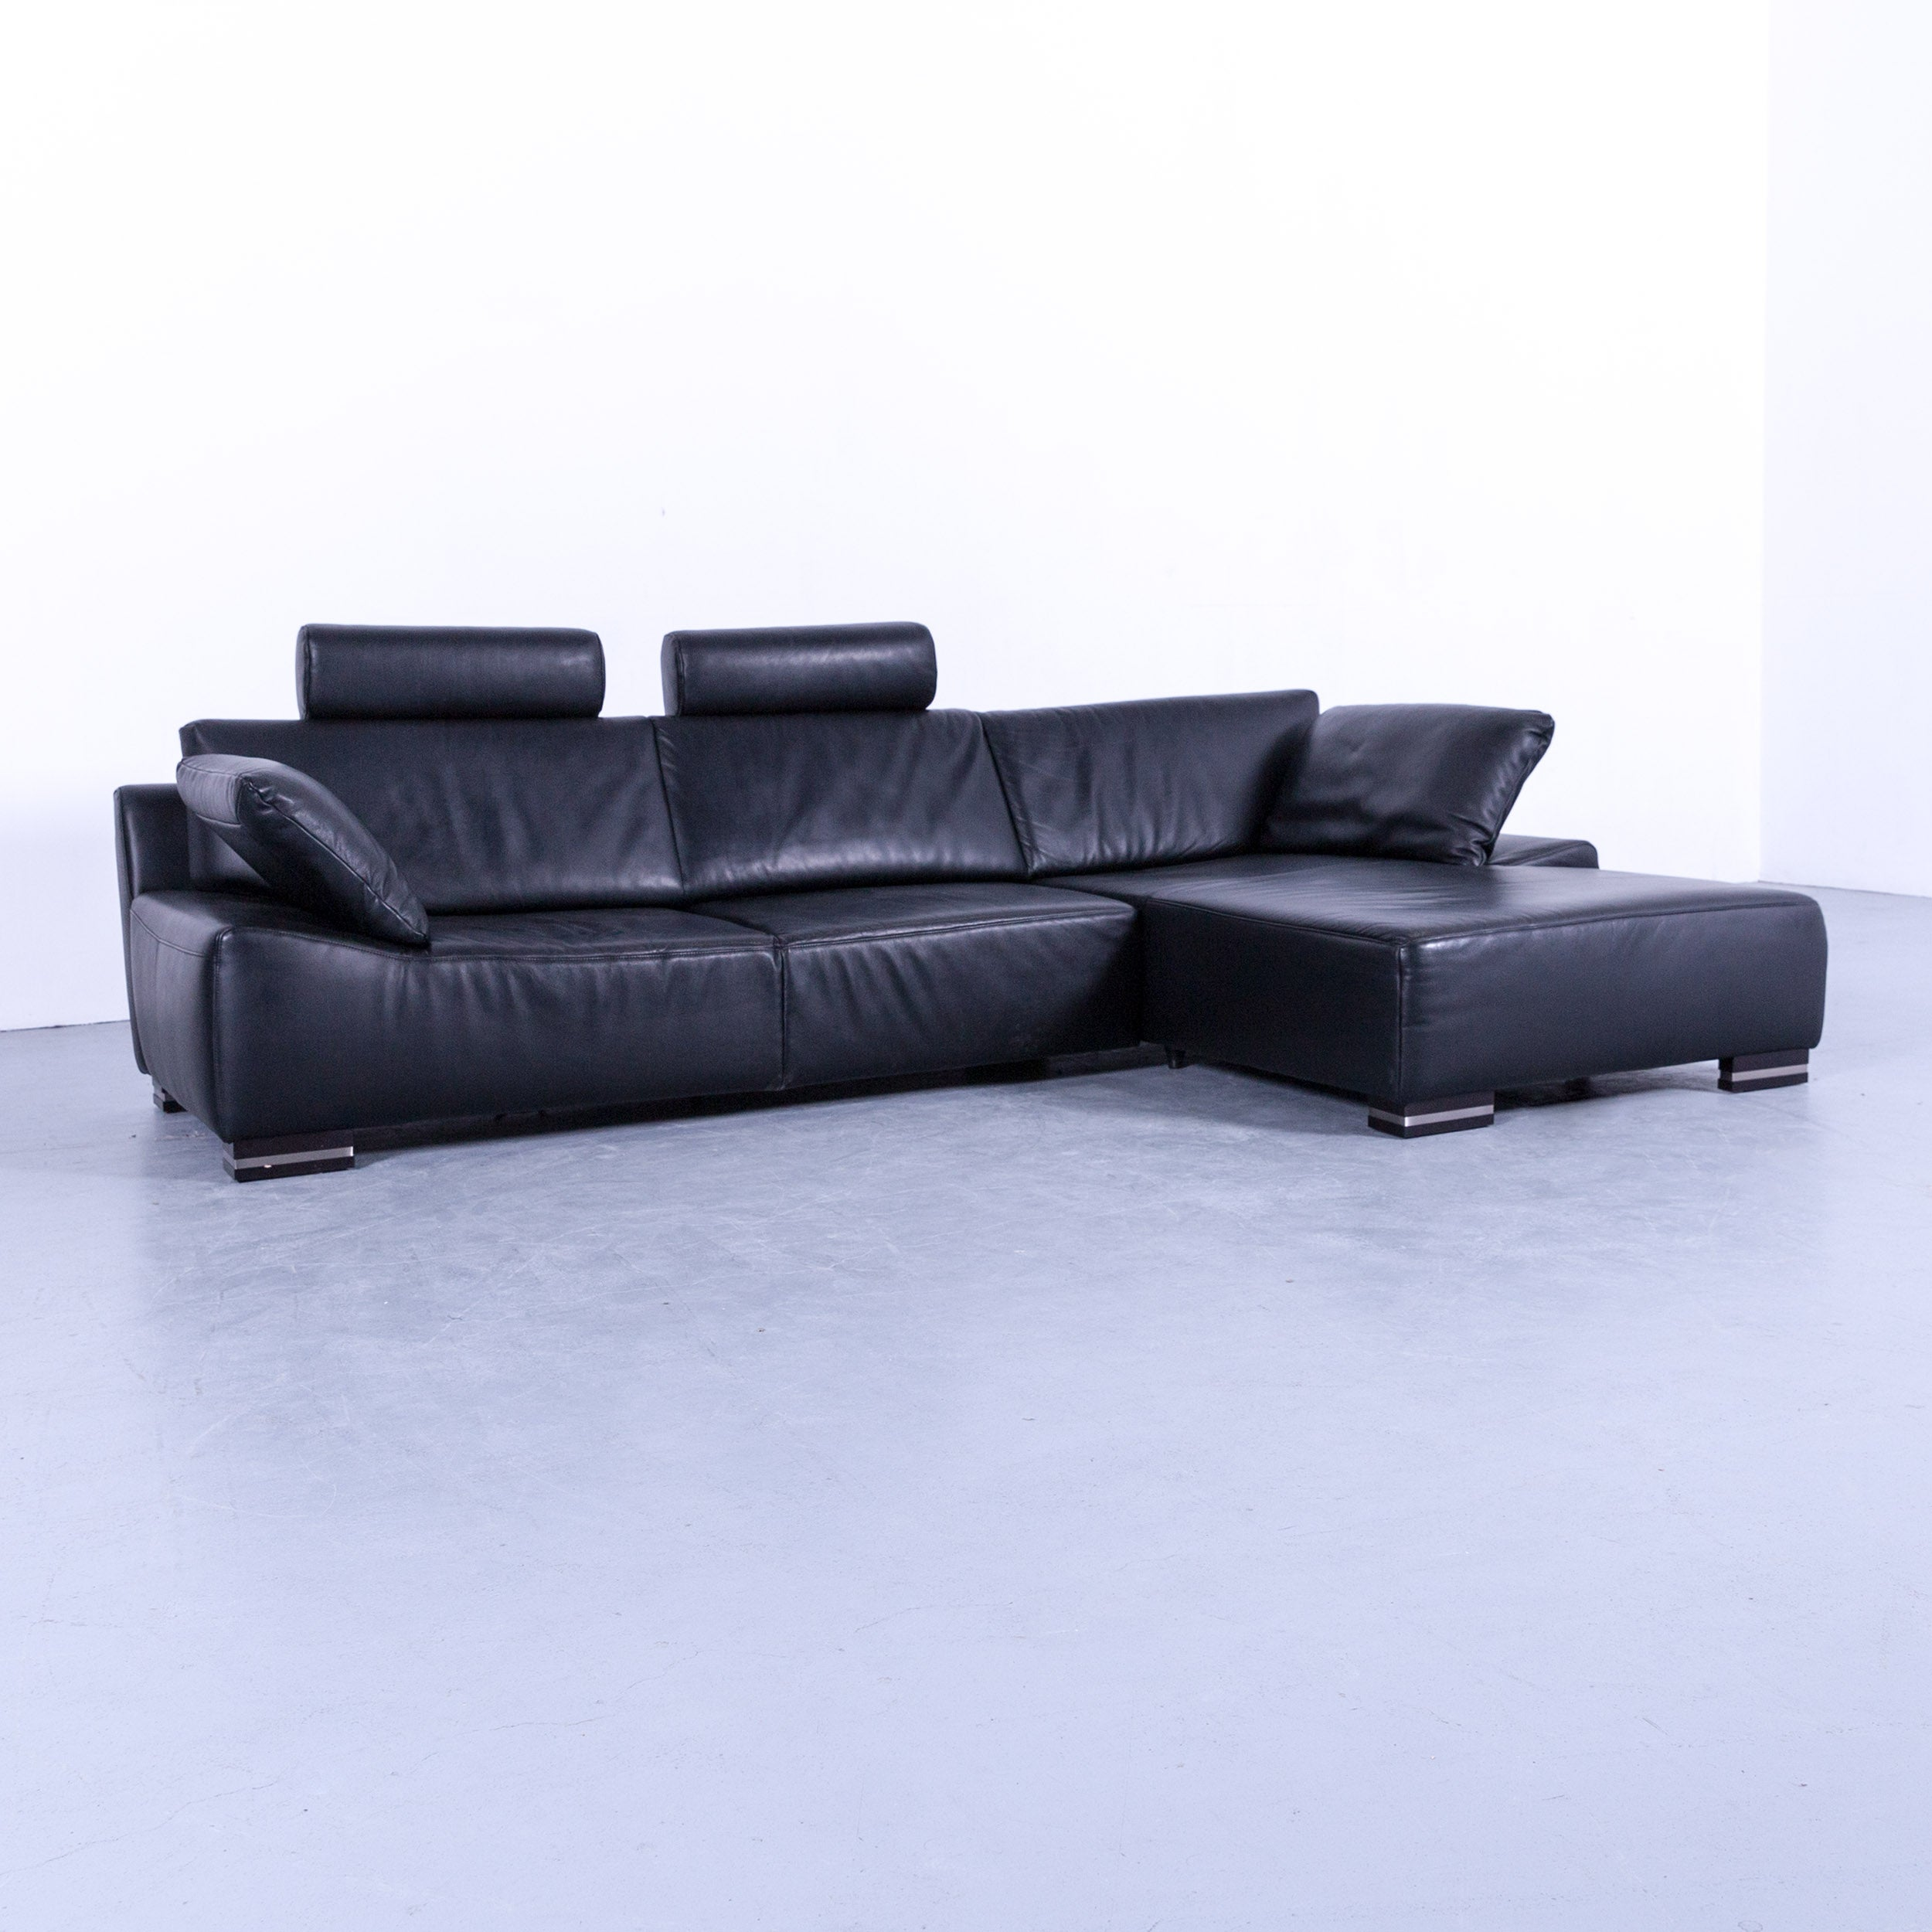 Sofa Funktion Ewald Schillig Bentley Designer Corner Couch Leather Black Funktion Neck Rest